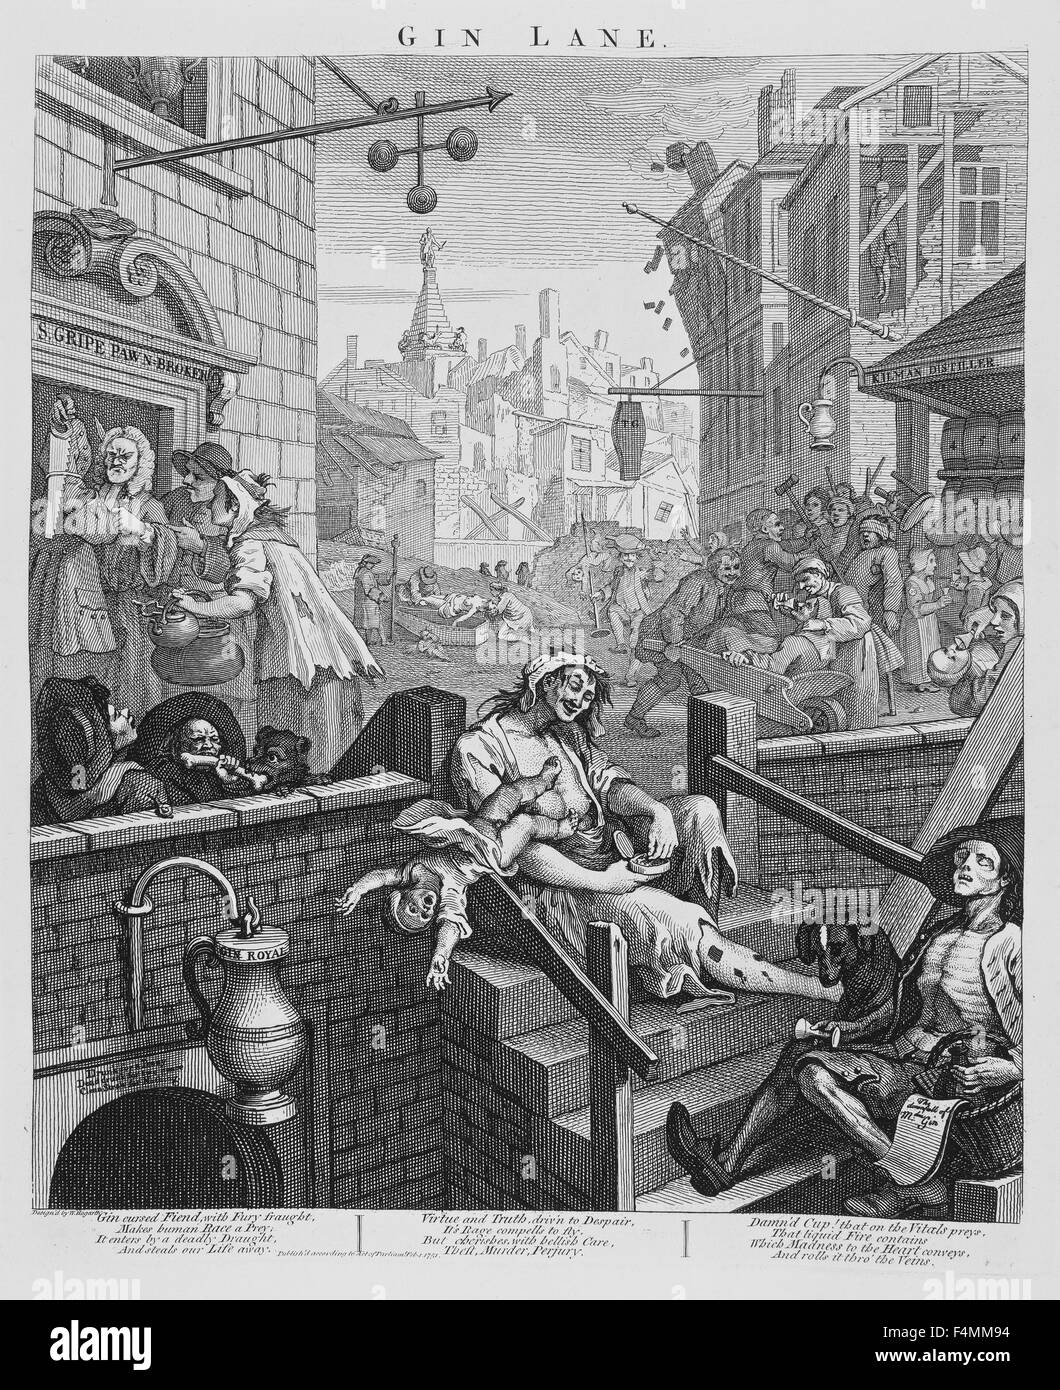 GIN LANE engraving by William Hogarth about 1750